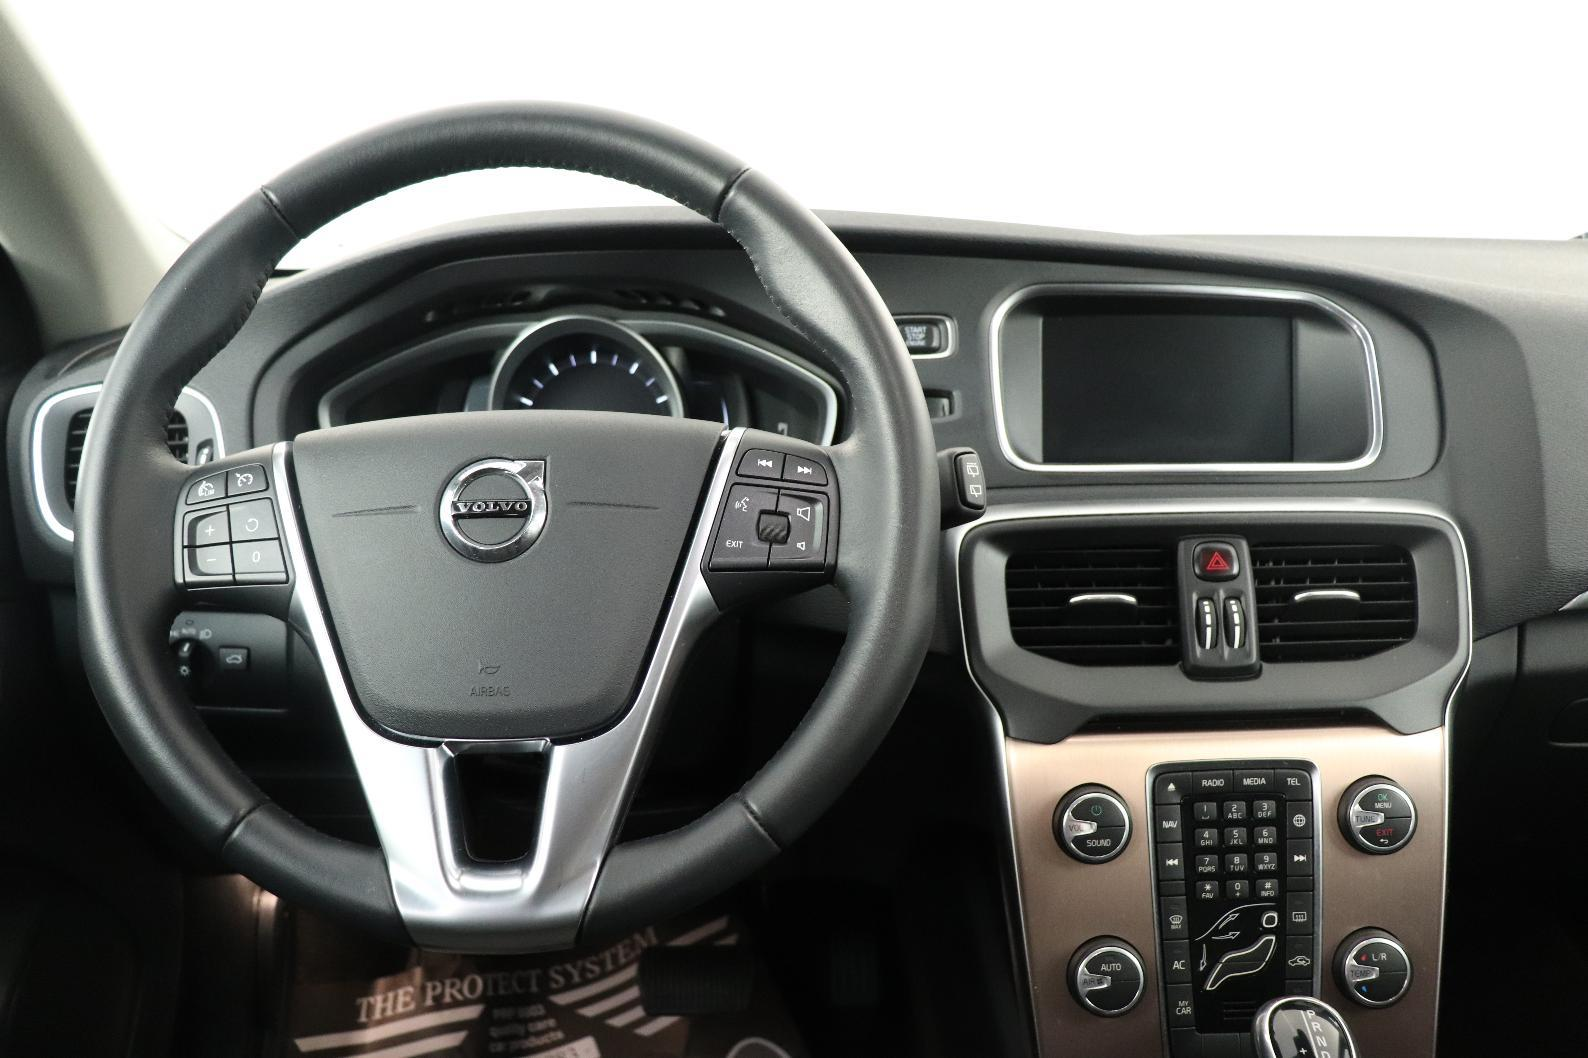 VOLVO V40 CROSS COUNTRY V40 Cross Country T3 152 ch Geartronic 6 Cross Country